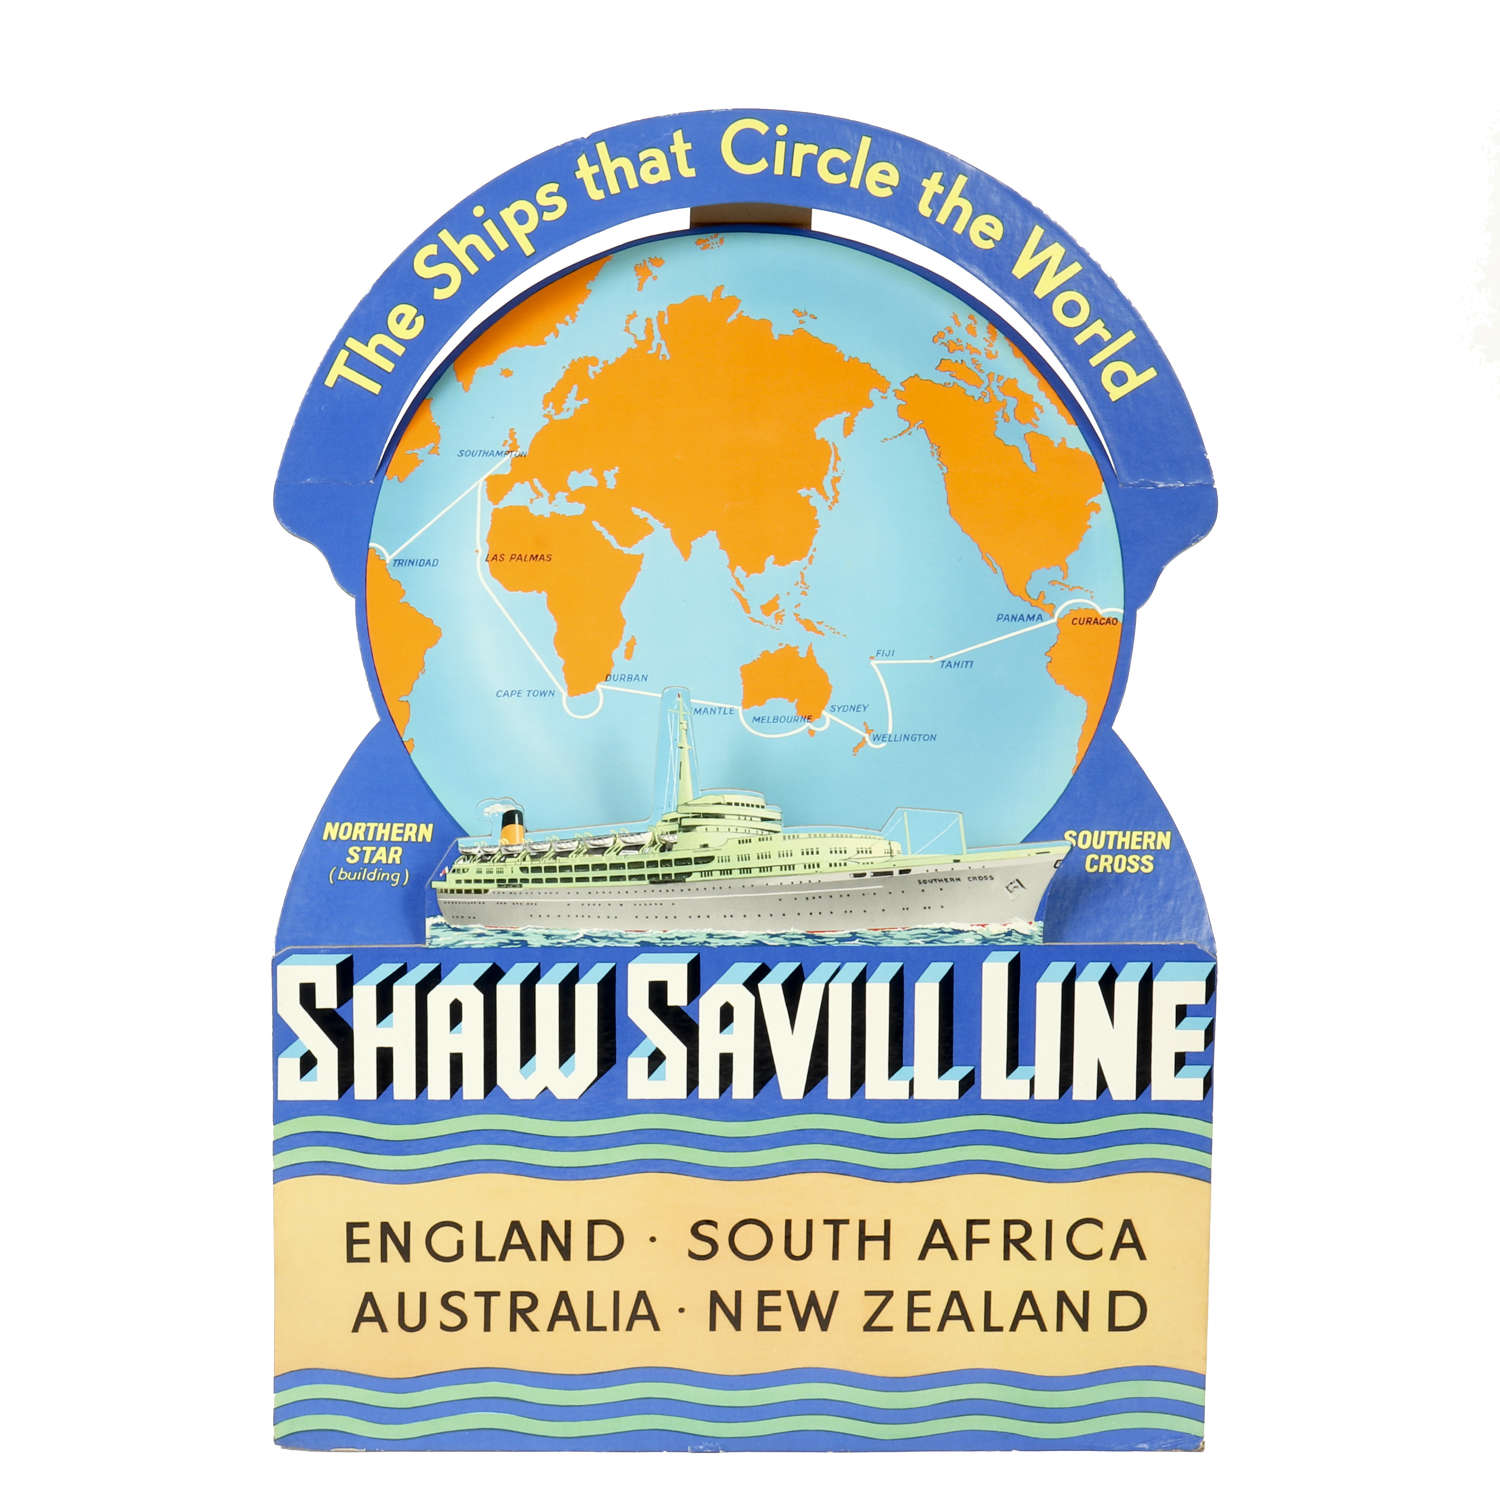 An original vintage advertising showcard for the Shaw Savill Line